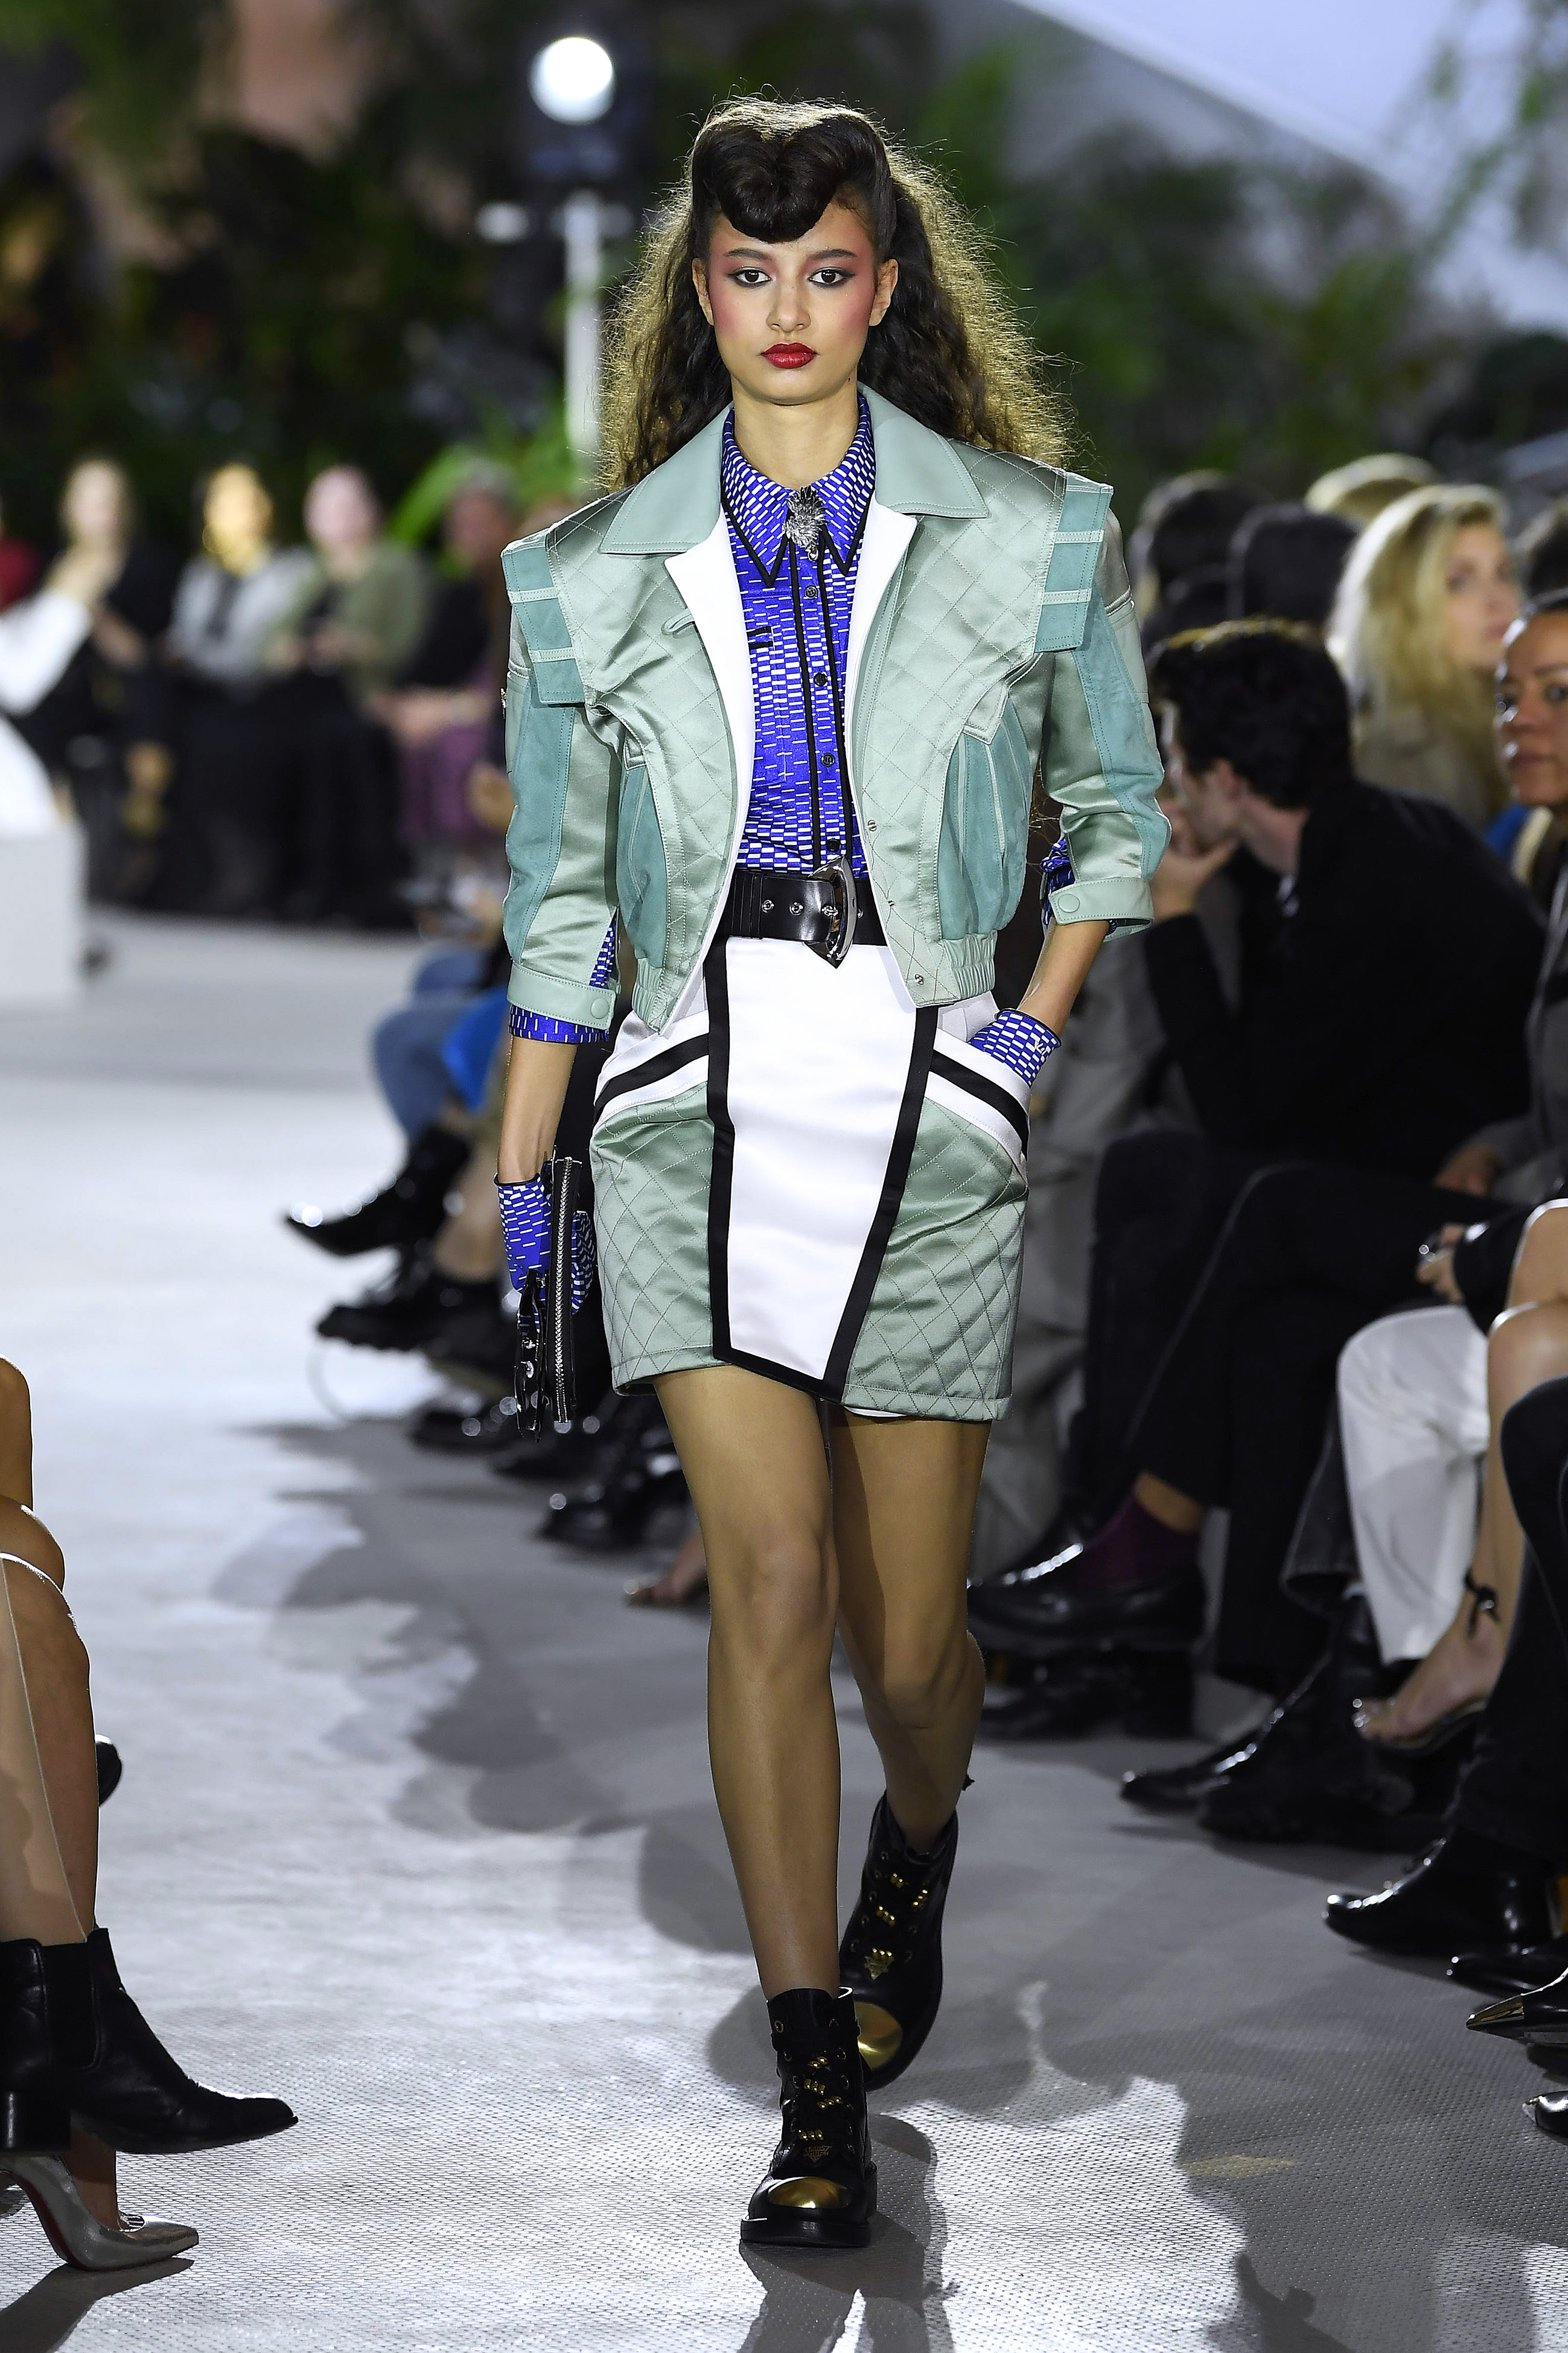 NEW YORK, NY – MAY 08: A model walks the runway during Louis Vuitton Cruise 2020 on May 8, 2019 in New York, USA. (Photo by Estrop/WireImage)